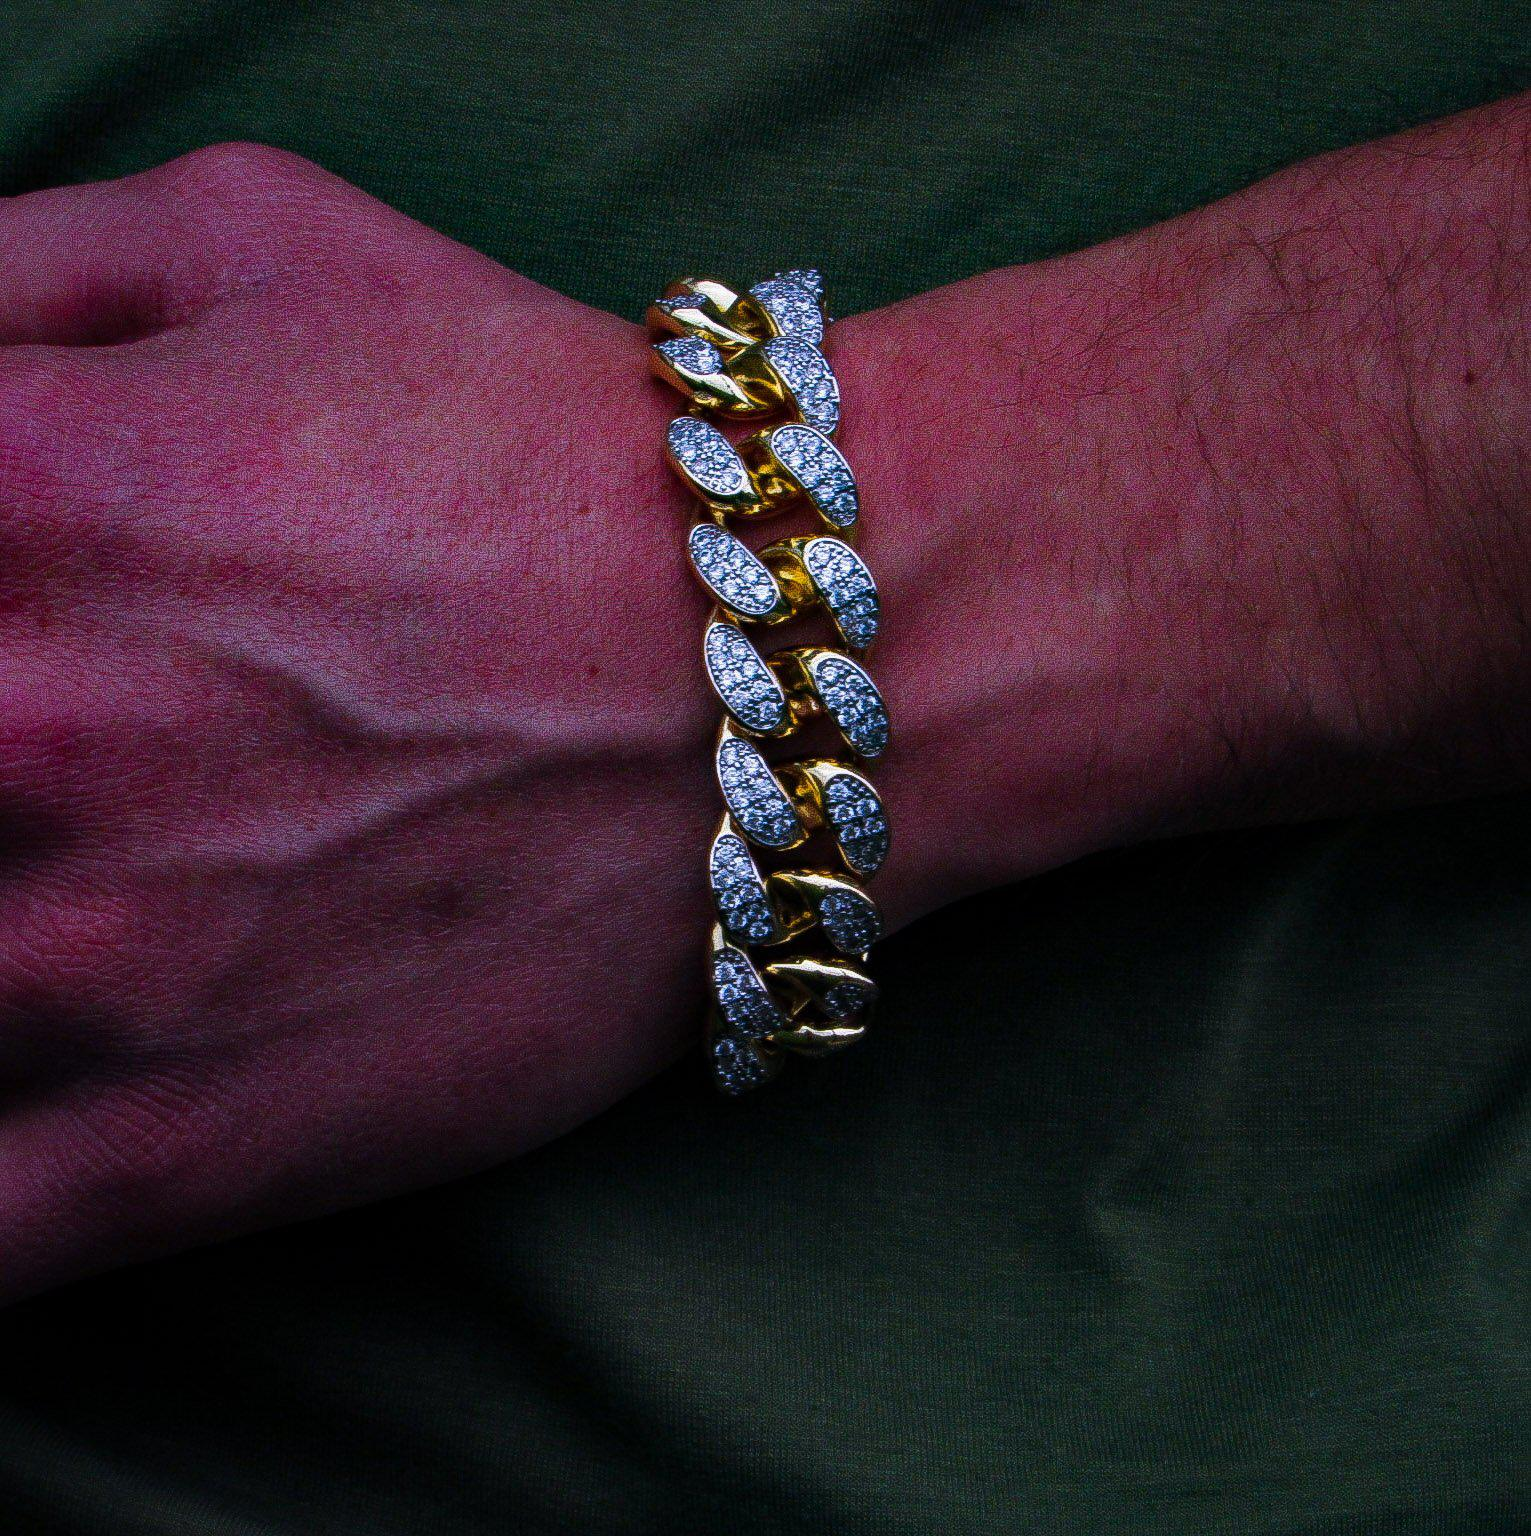 19mm Diamond Miami Cuban Link Bracelet in Yellow Gold - IcedGold